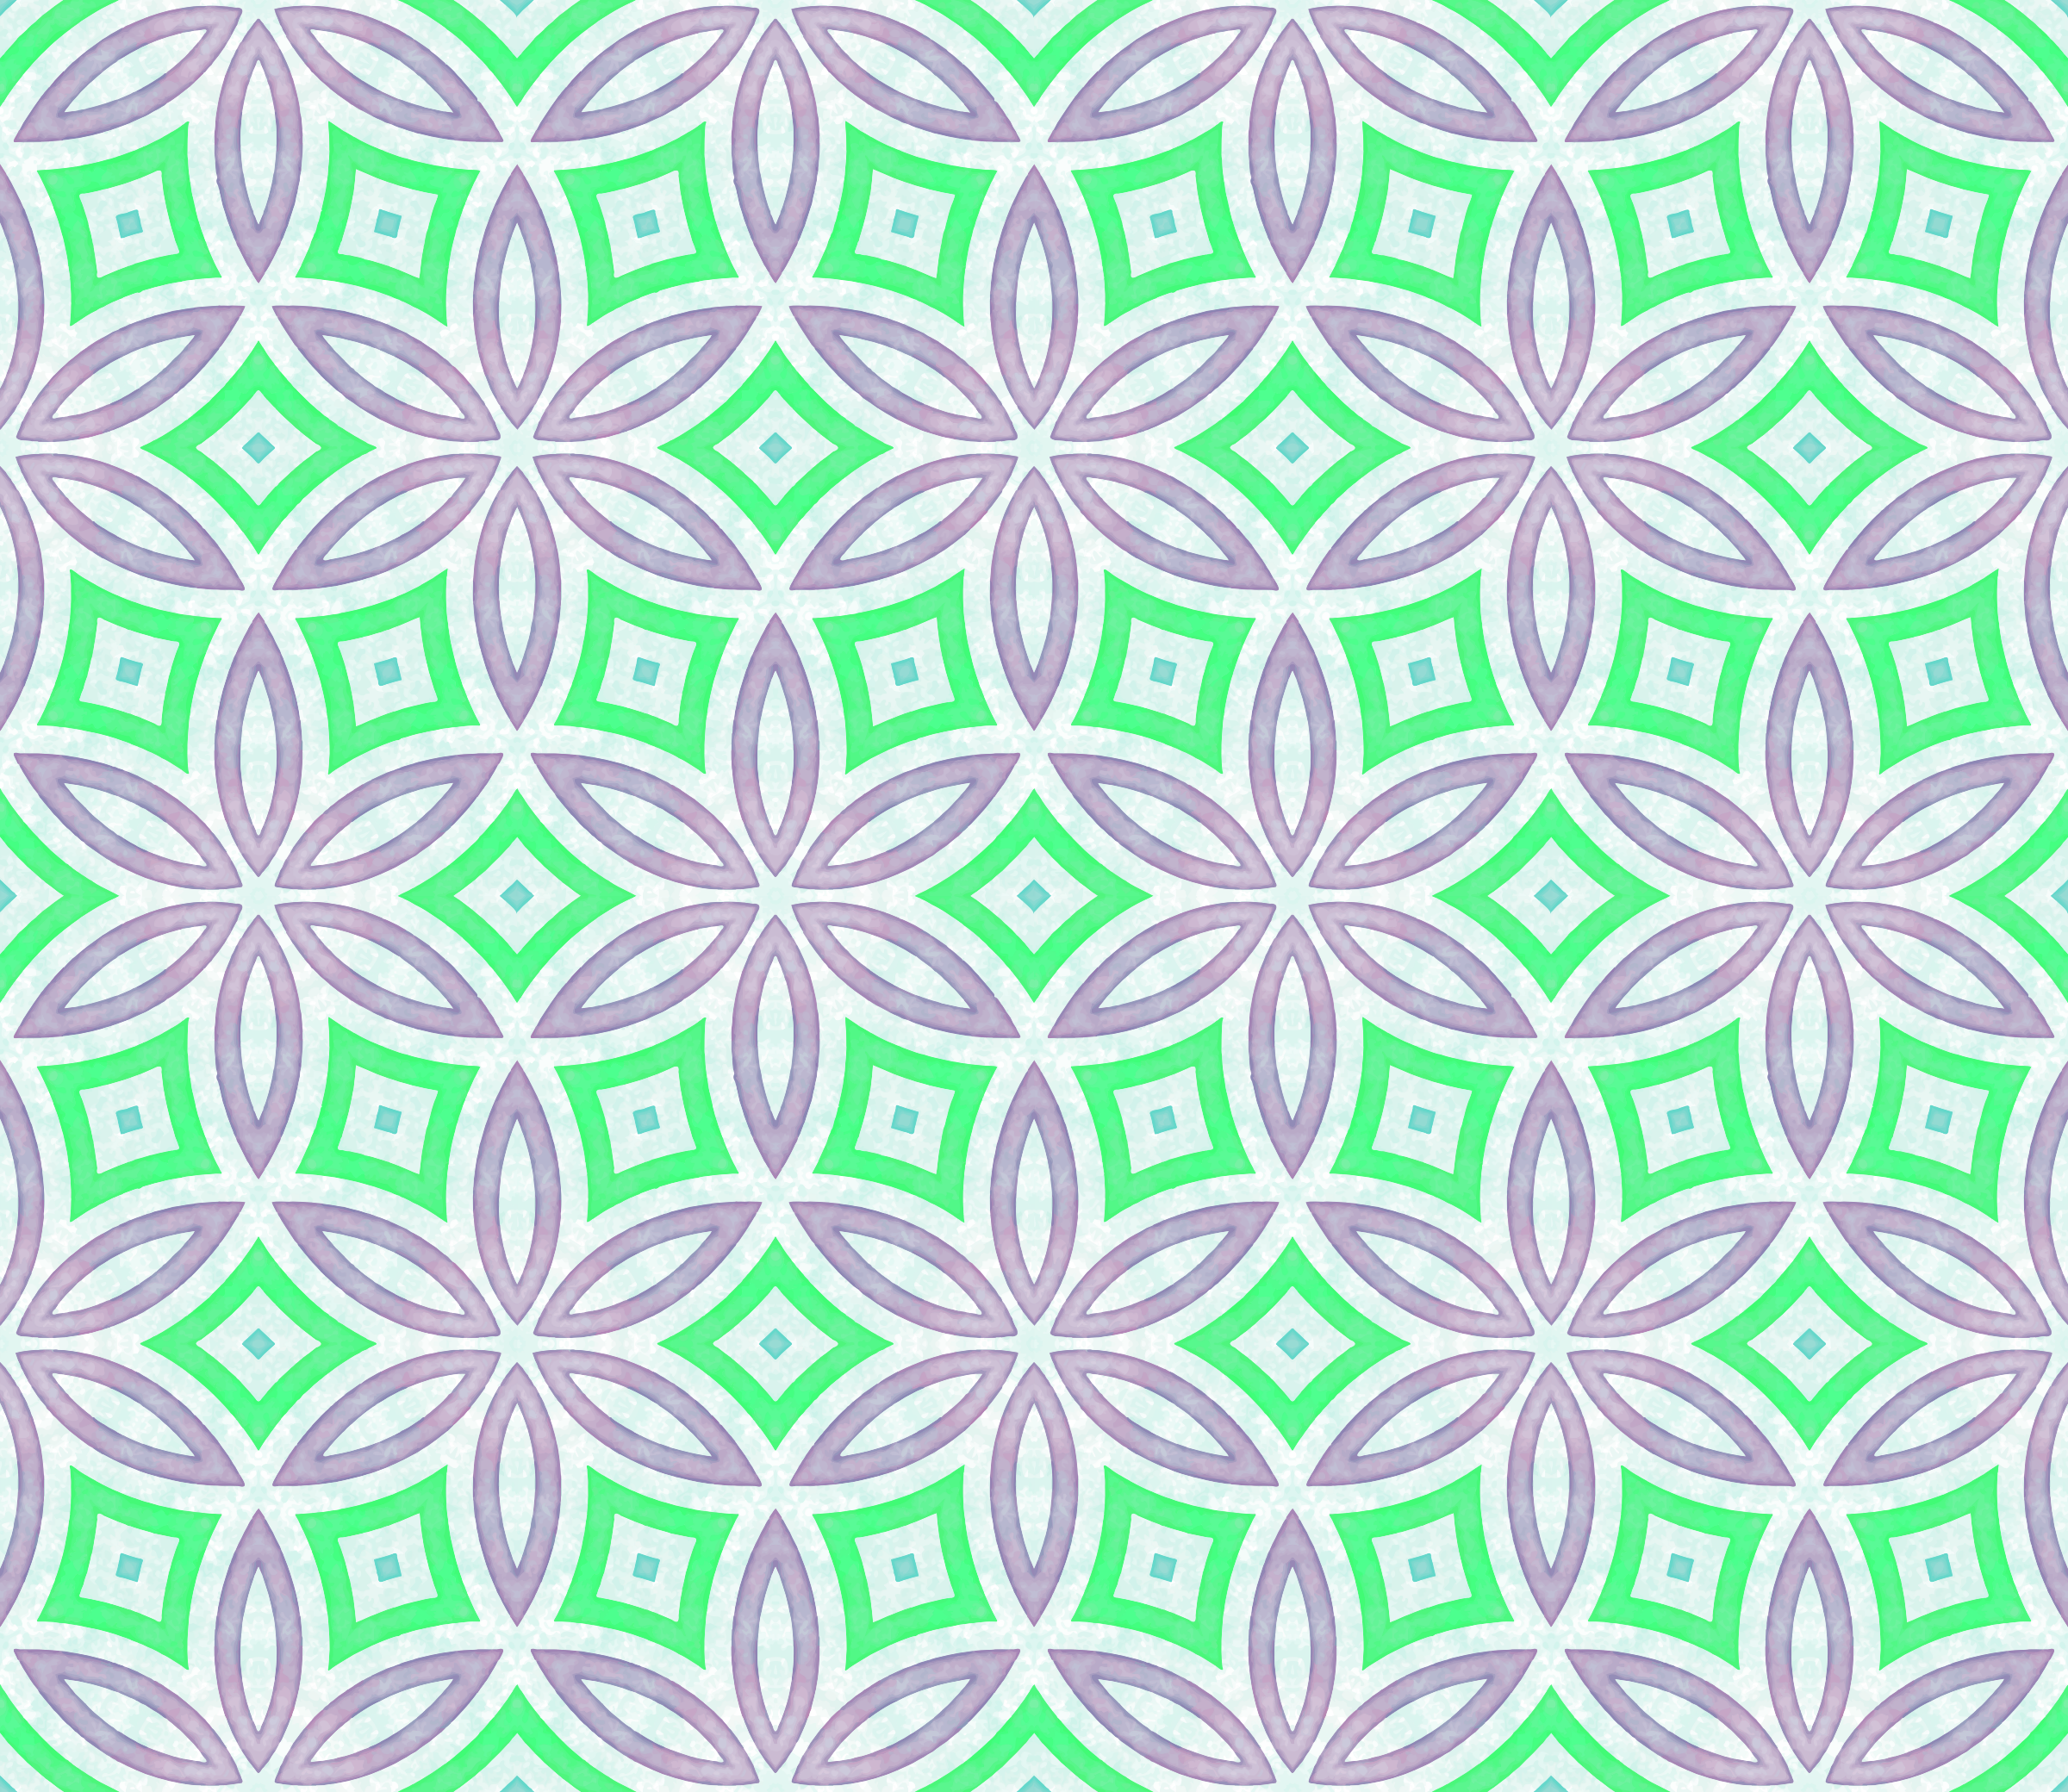 Background pattern 316 (colour 2) by Firkin